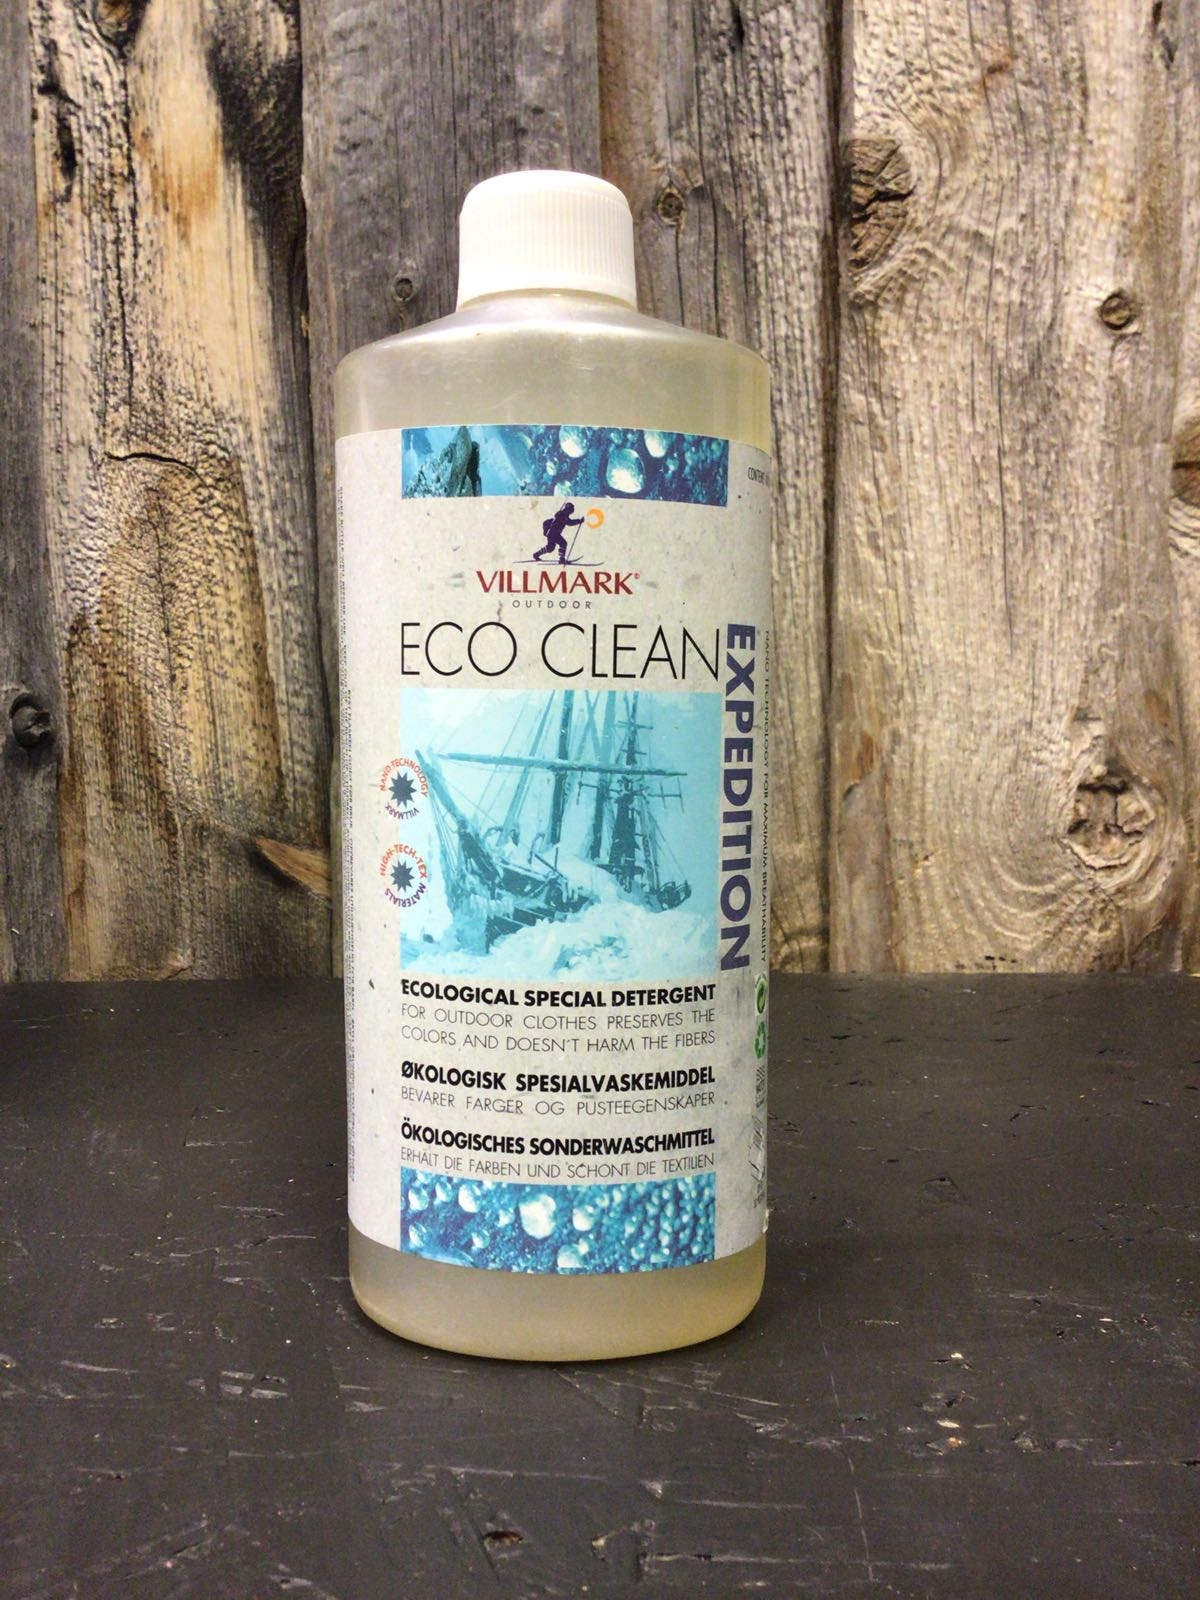 Expedition Eco clean